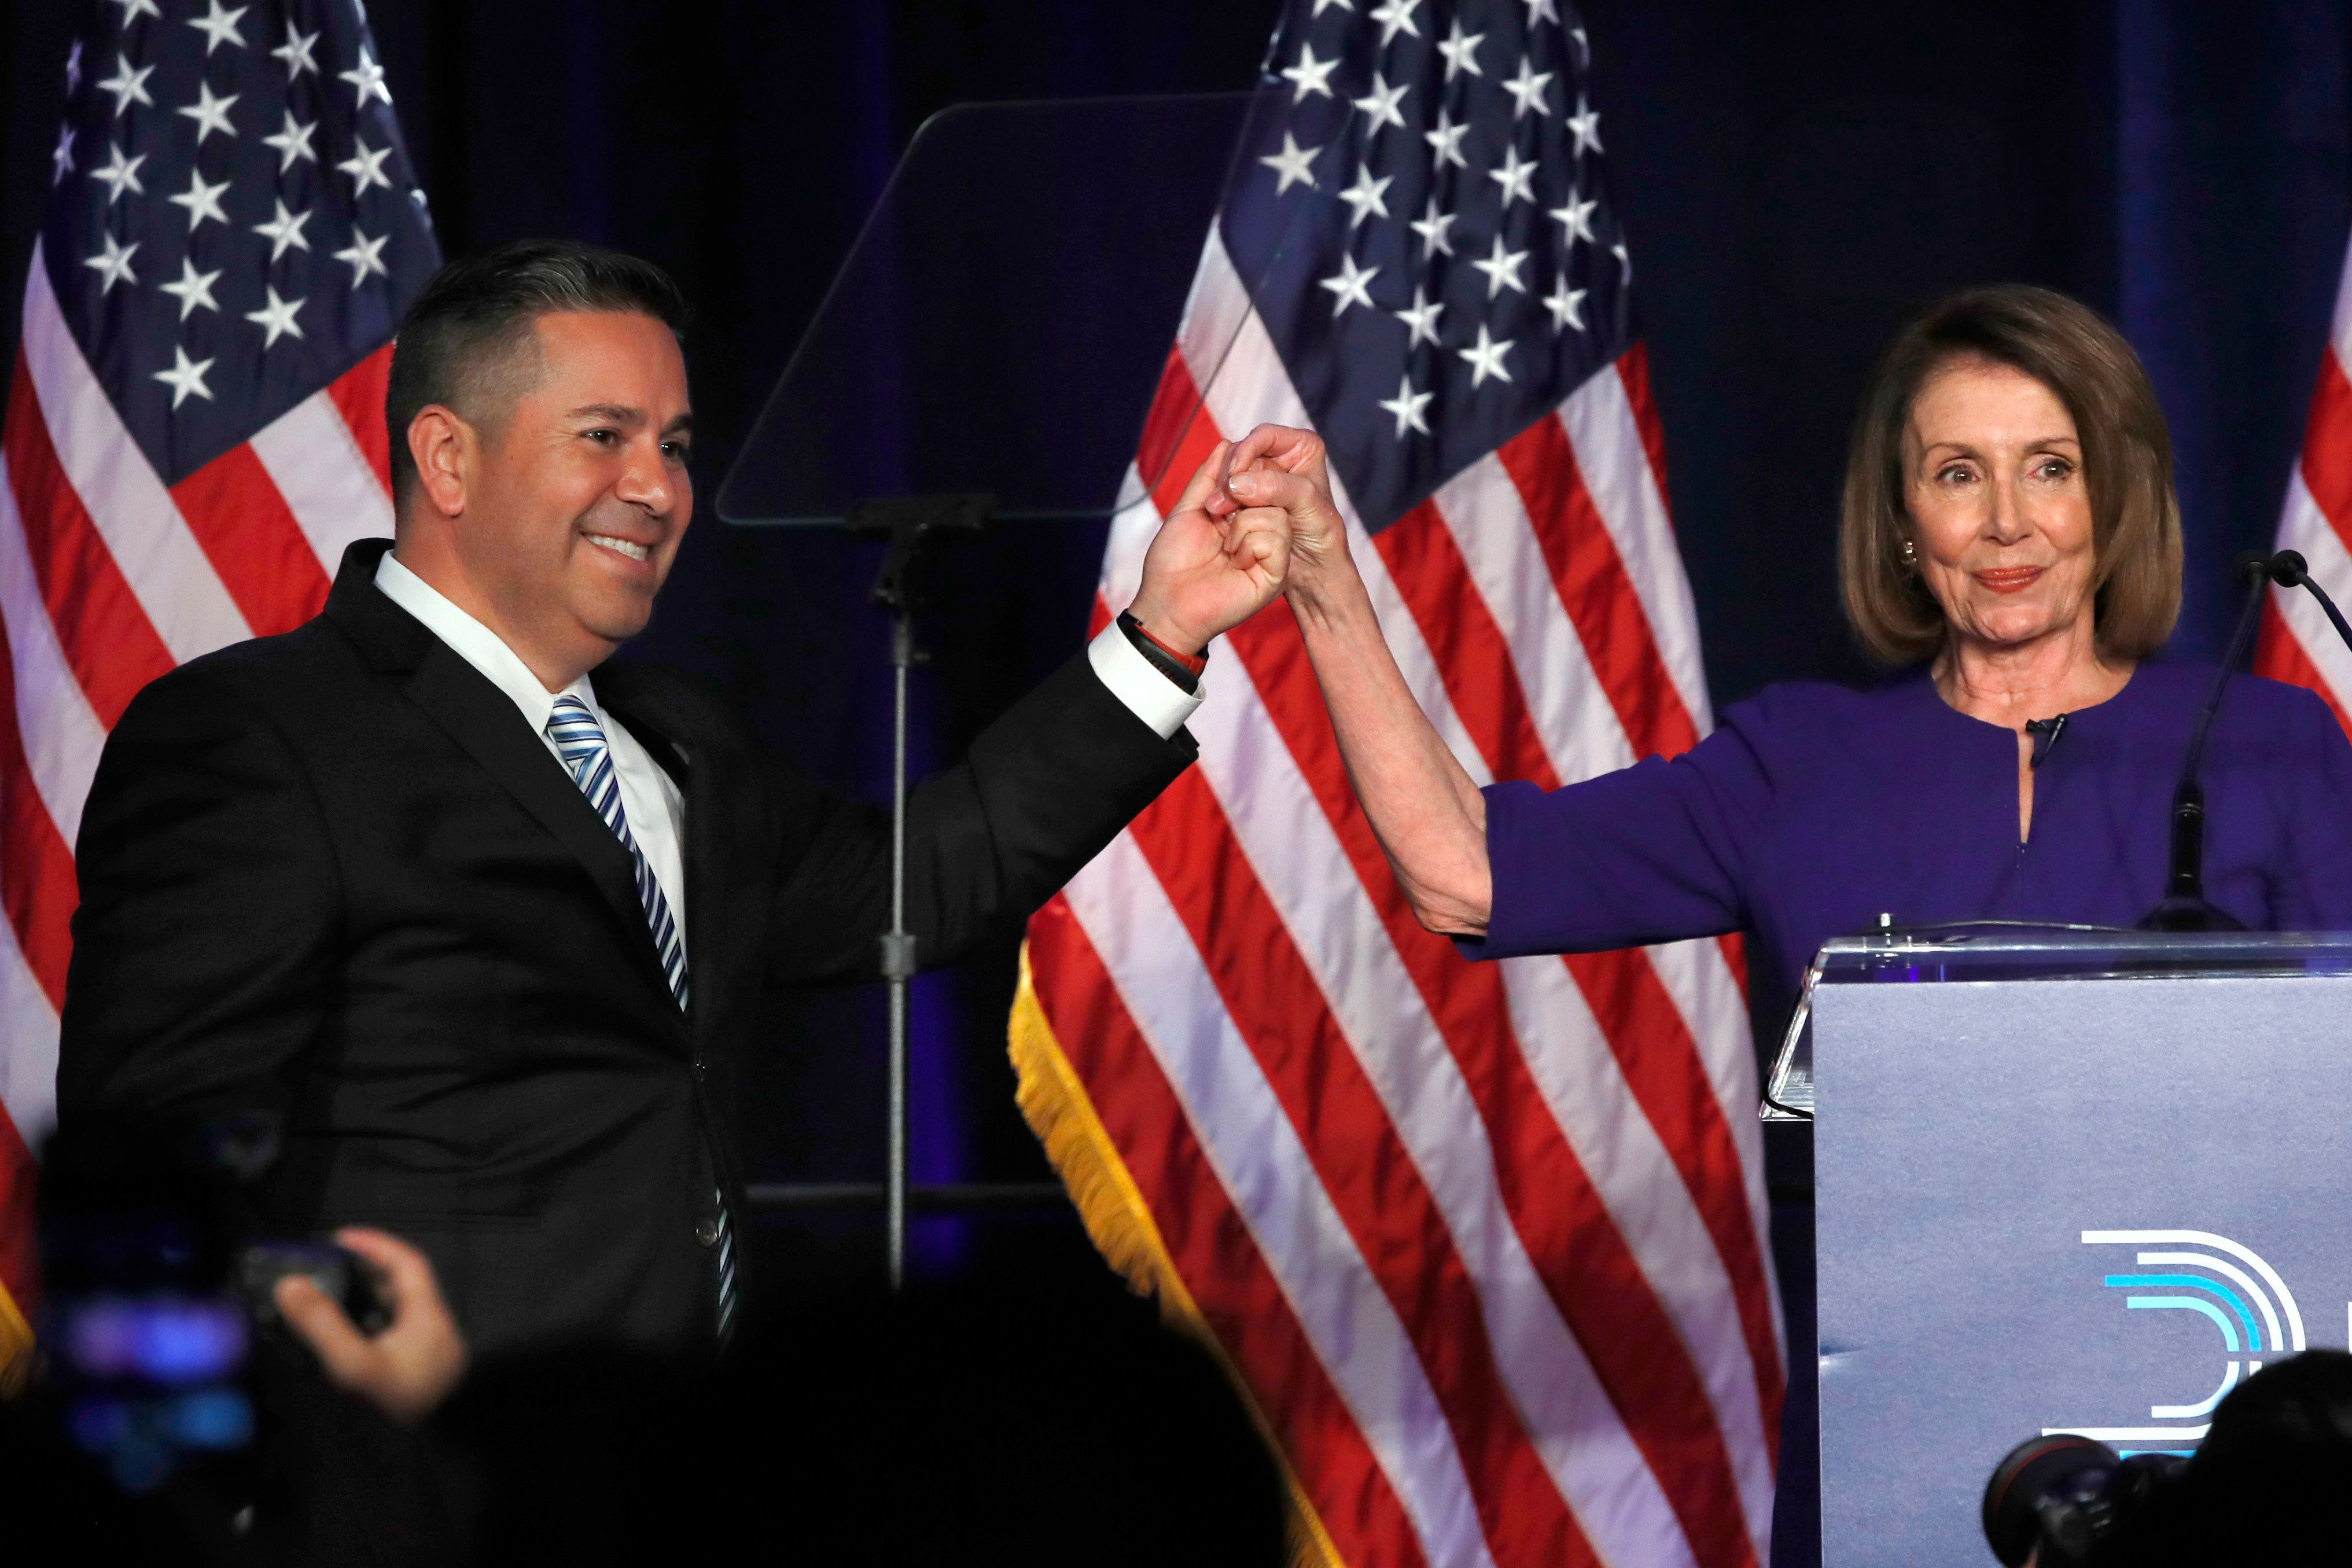 DCCC Chair Ben Ray Luján, left, and House Democratic Leader Nancy Pelosi of Calif., gesture after speaking to a crowd of volunteers and supporters of the Democratic party at an election night event at the Hyatt Regency Hotel, on Tuesday, Nov. 6, 2018, in Washington. (AP Photo/Jacquelyn Martin)